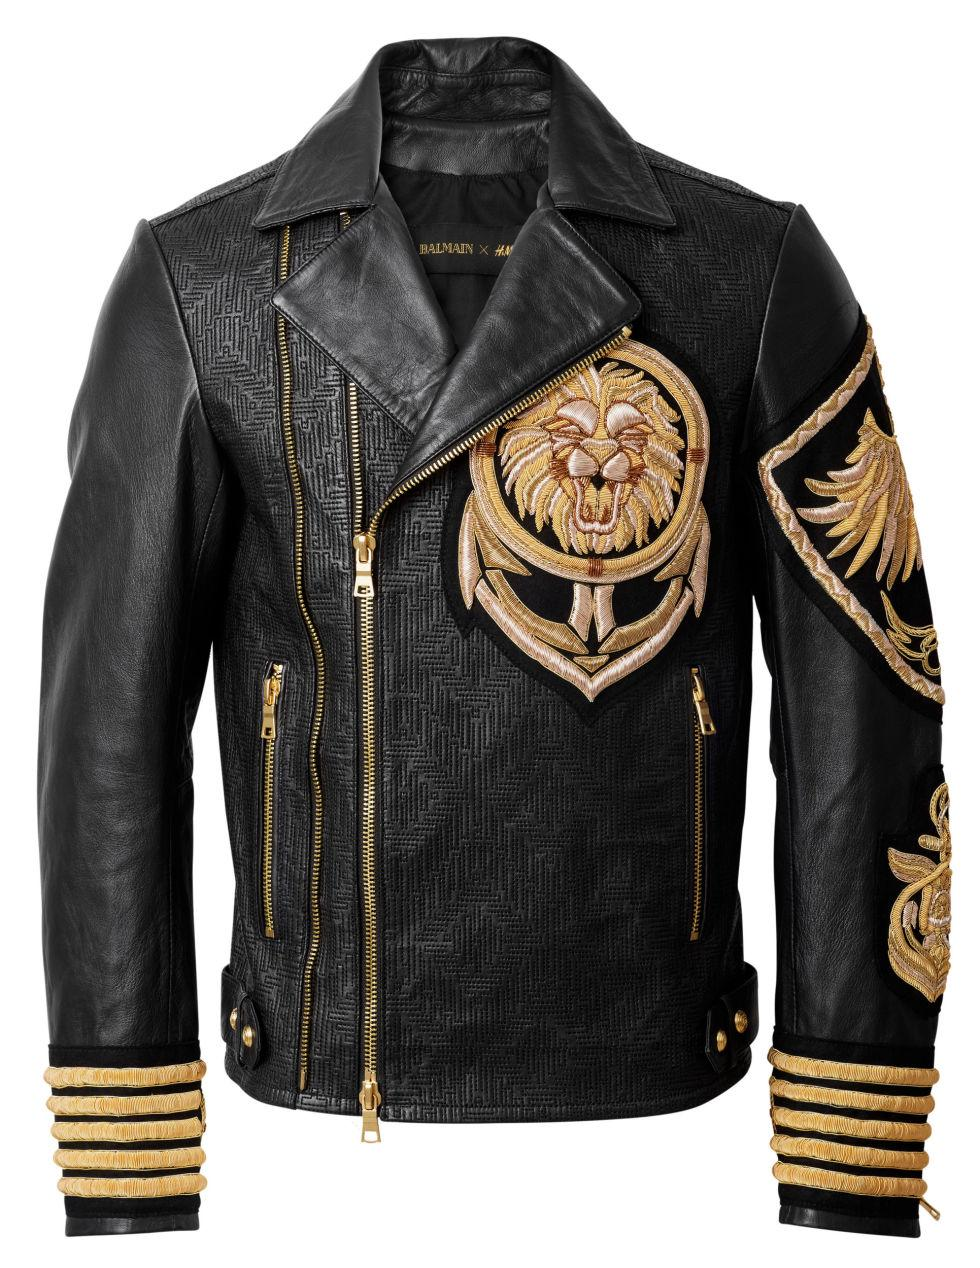 Balmain Nyc | Balmain Leather Jacket | Pierre Balmain Leather Jacket